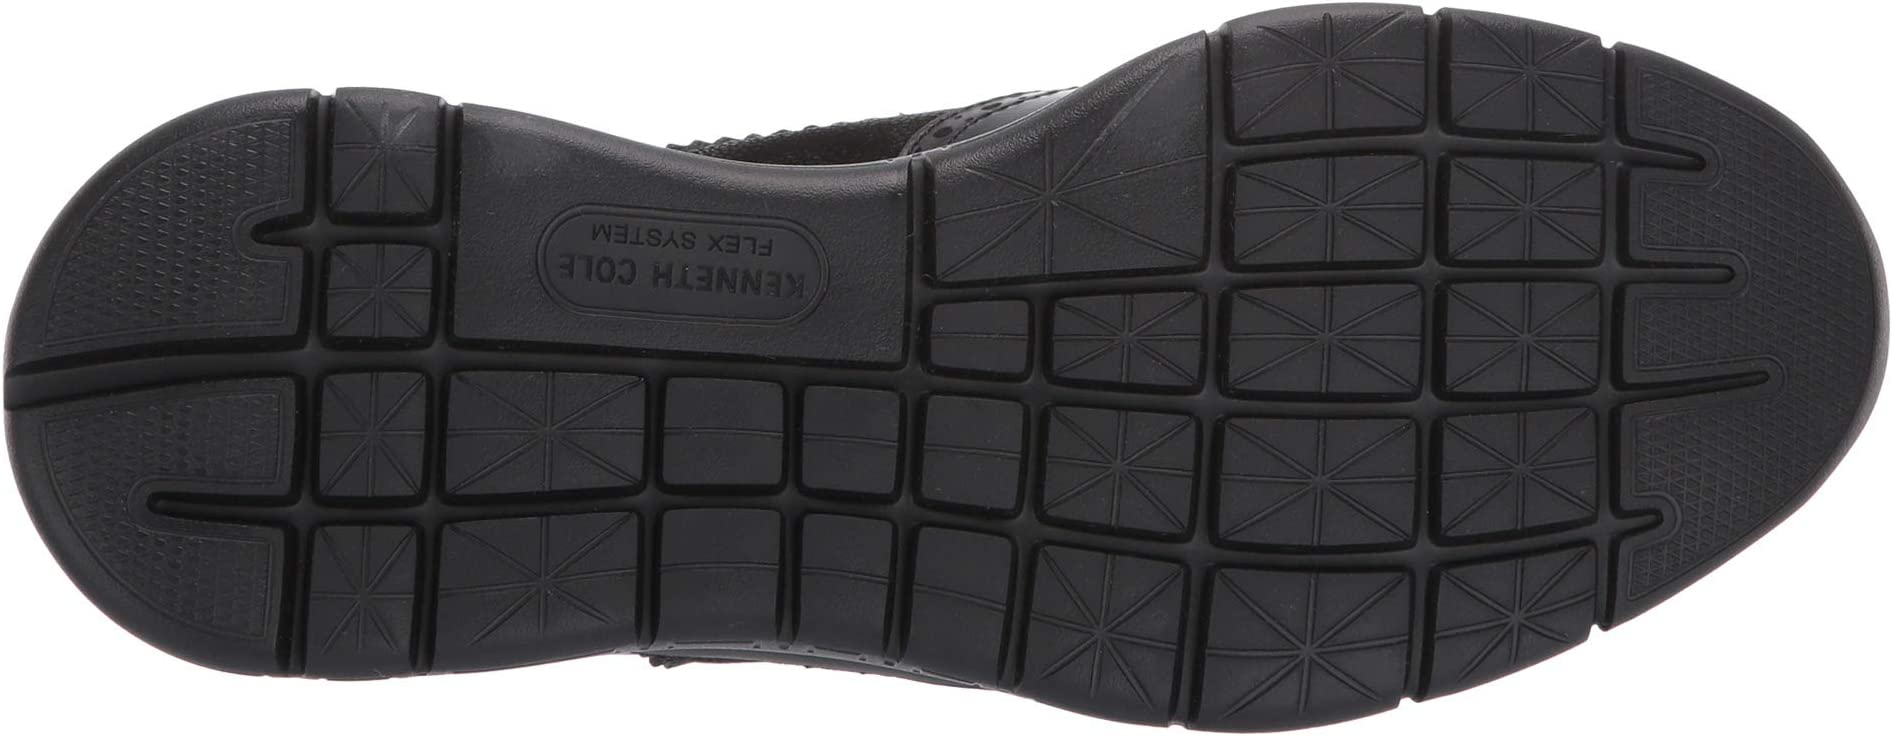 Kenneth Cole New York Trent Lace-Up | Men's shoes | 2020 Newest